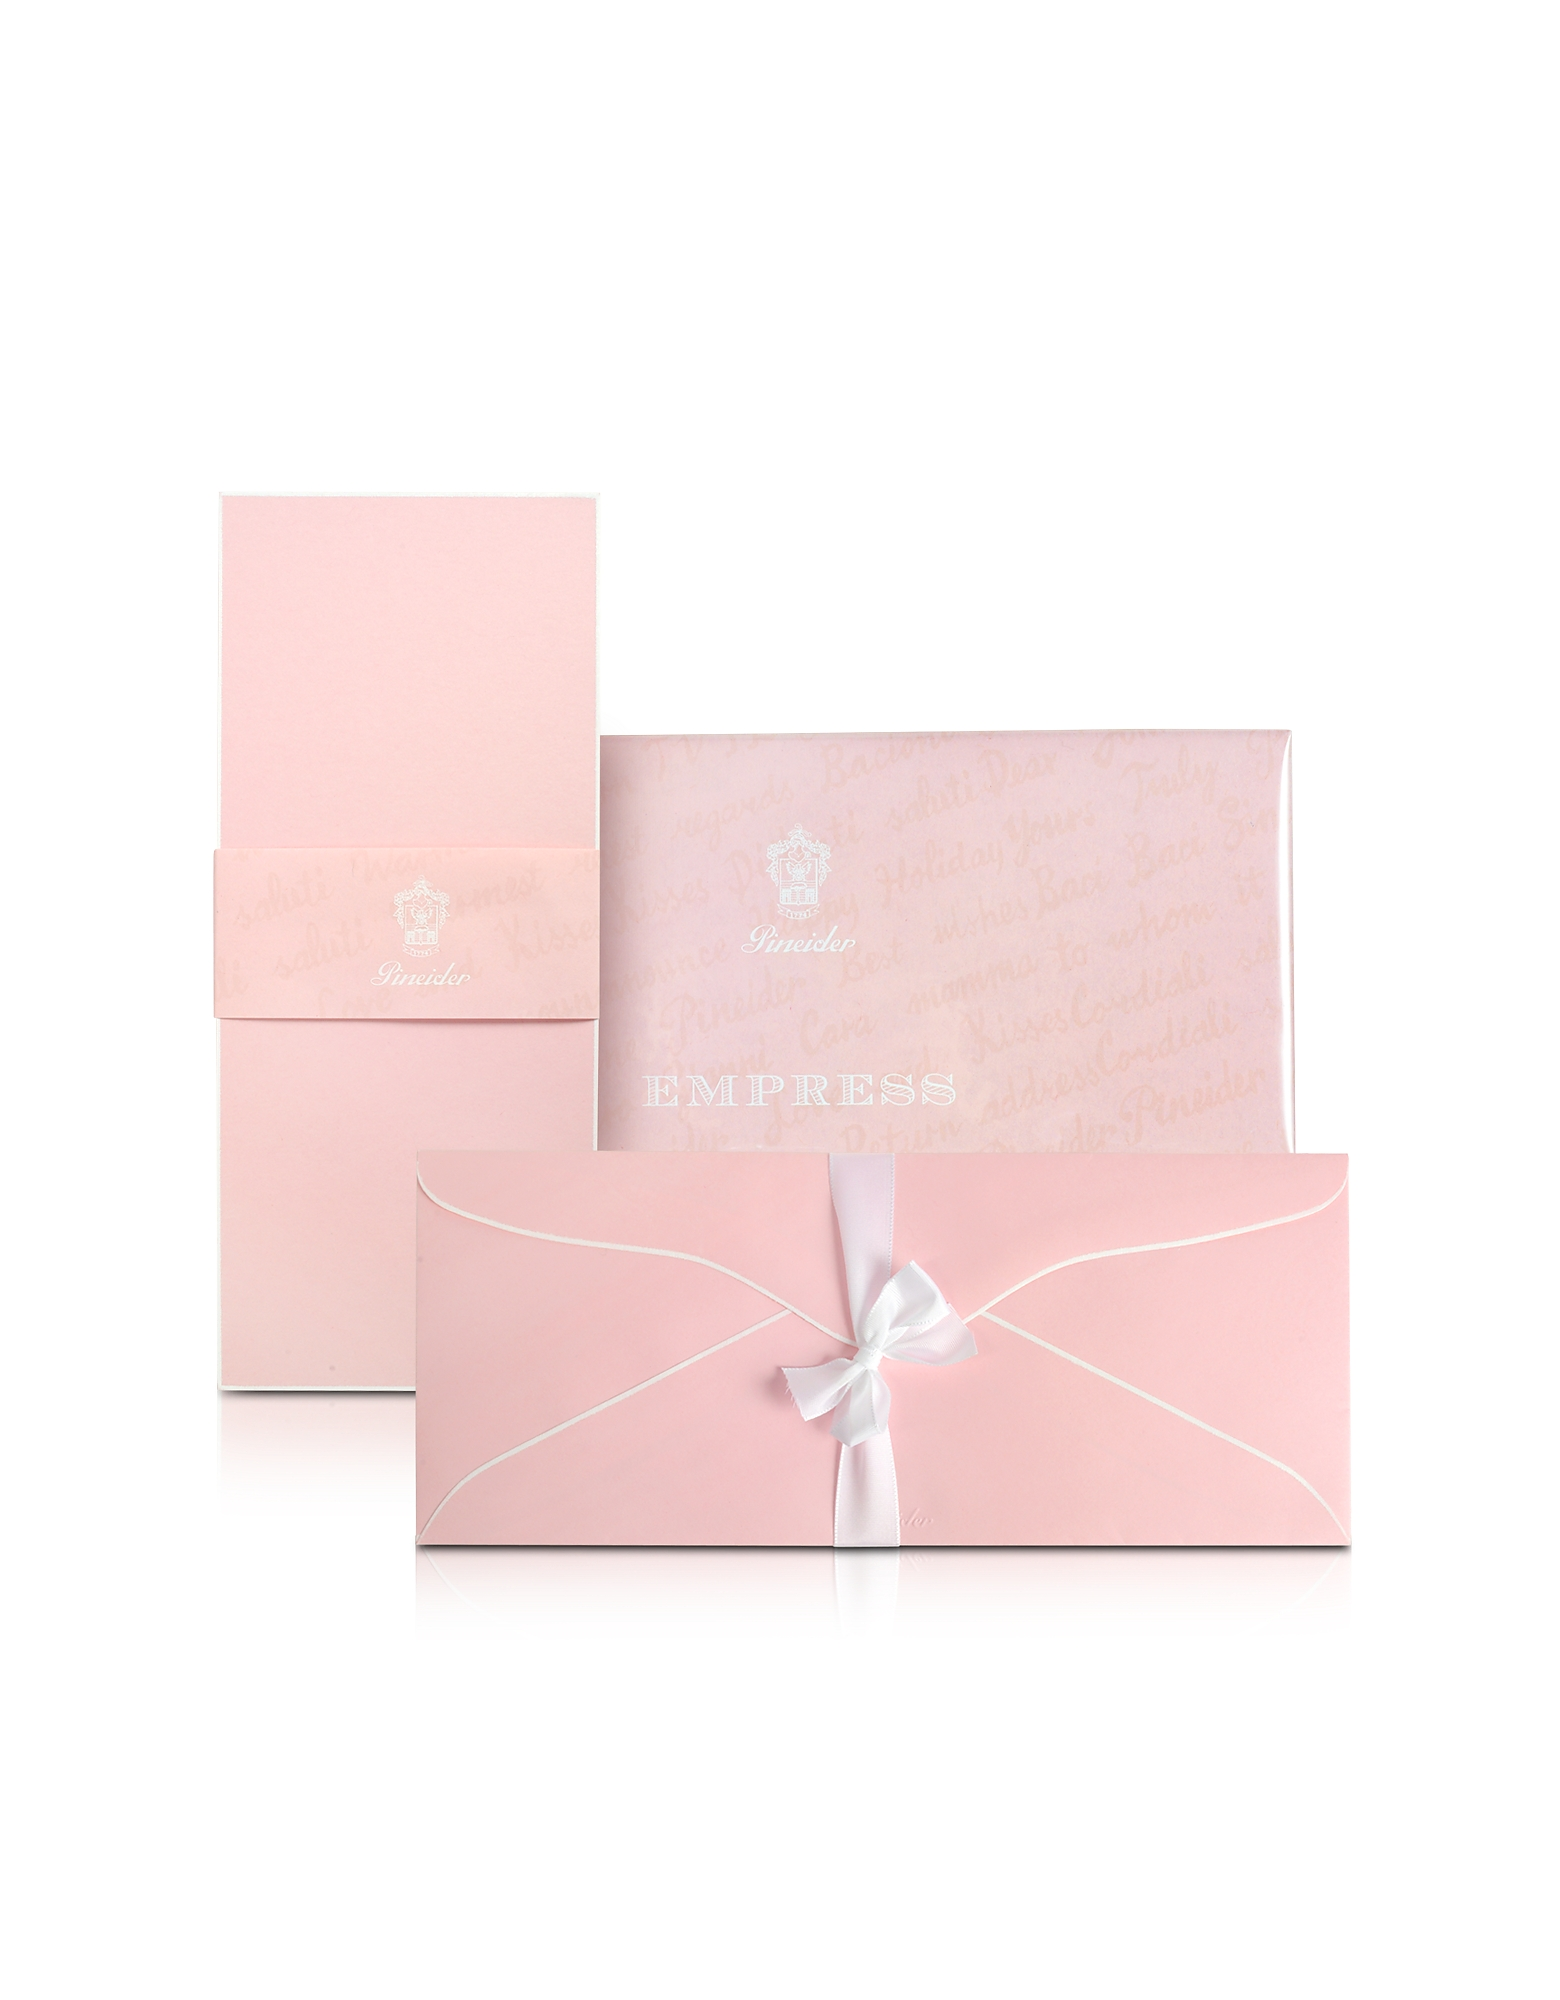 Empress - 25 Long Pink Note Cards with Handpainted White Border